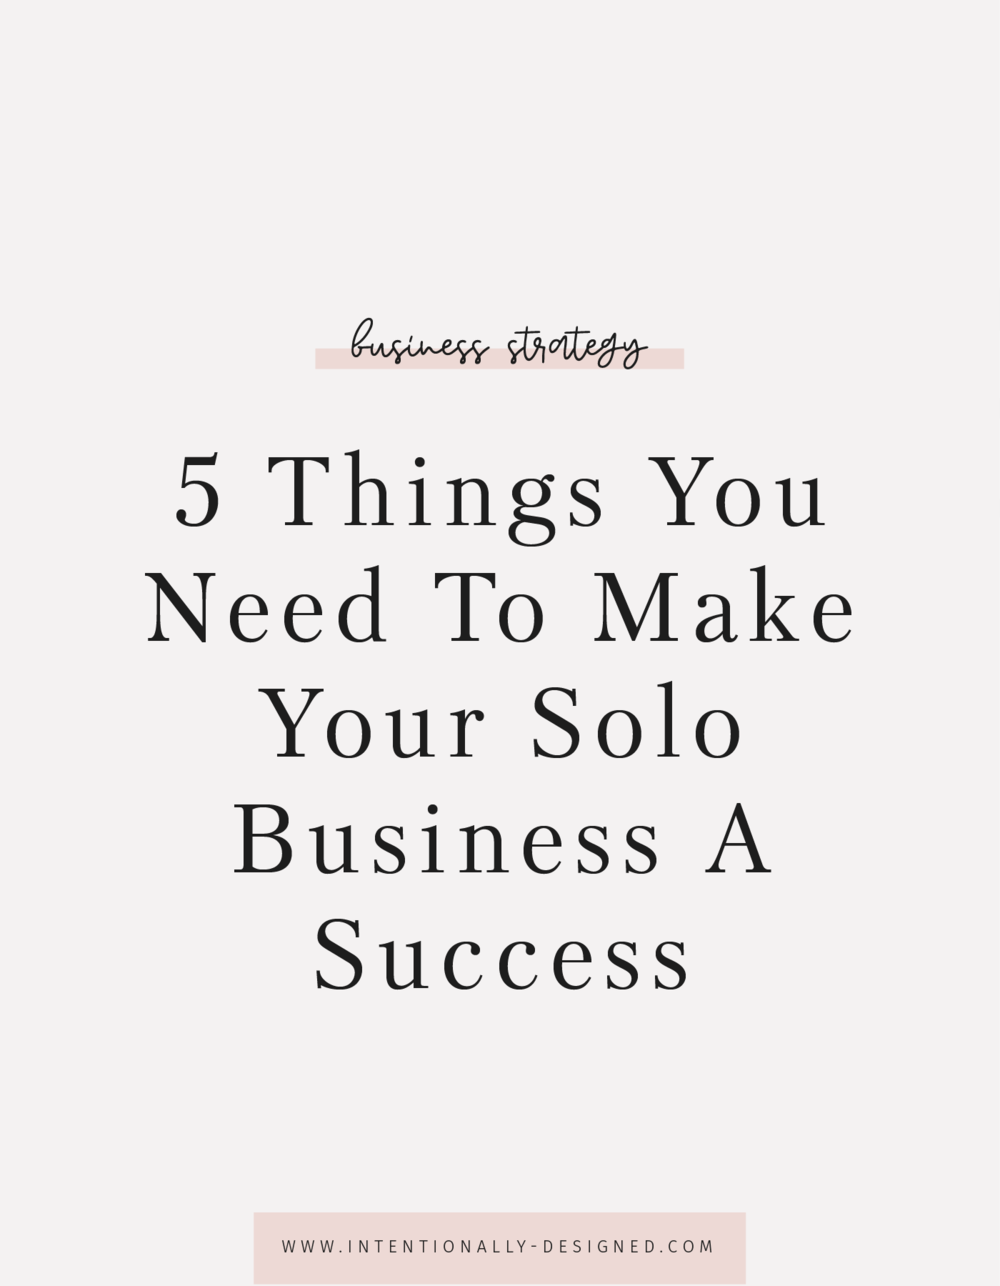 5 Things You Need To Make Your Solo Business A Success